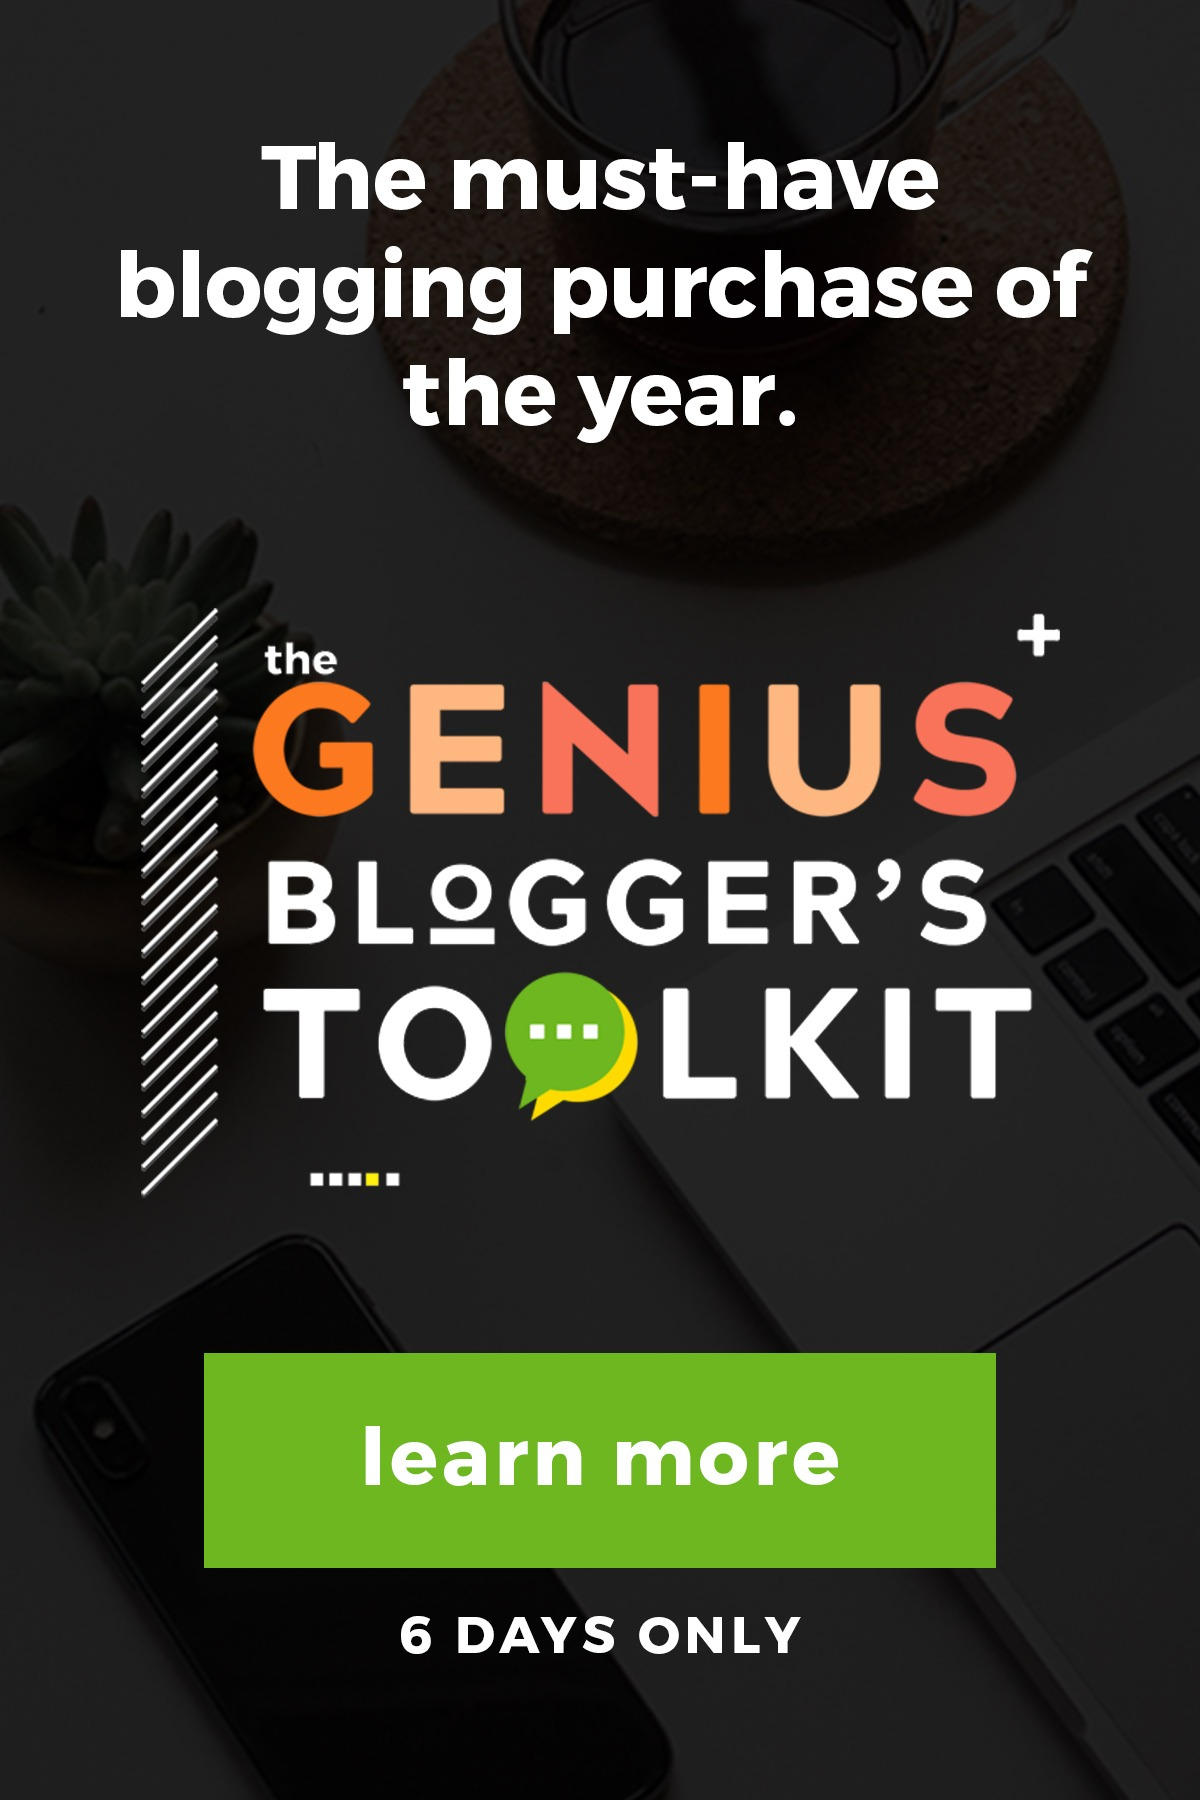 Want to grow your #blog? The Genius Blogger's Toolkit is back and is 98% off for just 6 days! Get access to over $6000 in #blogging resources, at one amazing price making it the blogging resource you can't miss! #eliteblogacademy #ultimatebundles #geniusbloggerstoolkit #bloggingresources #makemoneyblogging